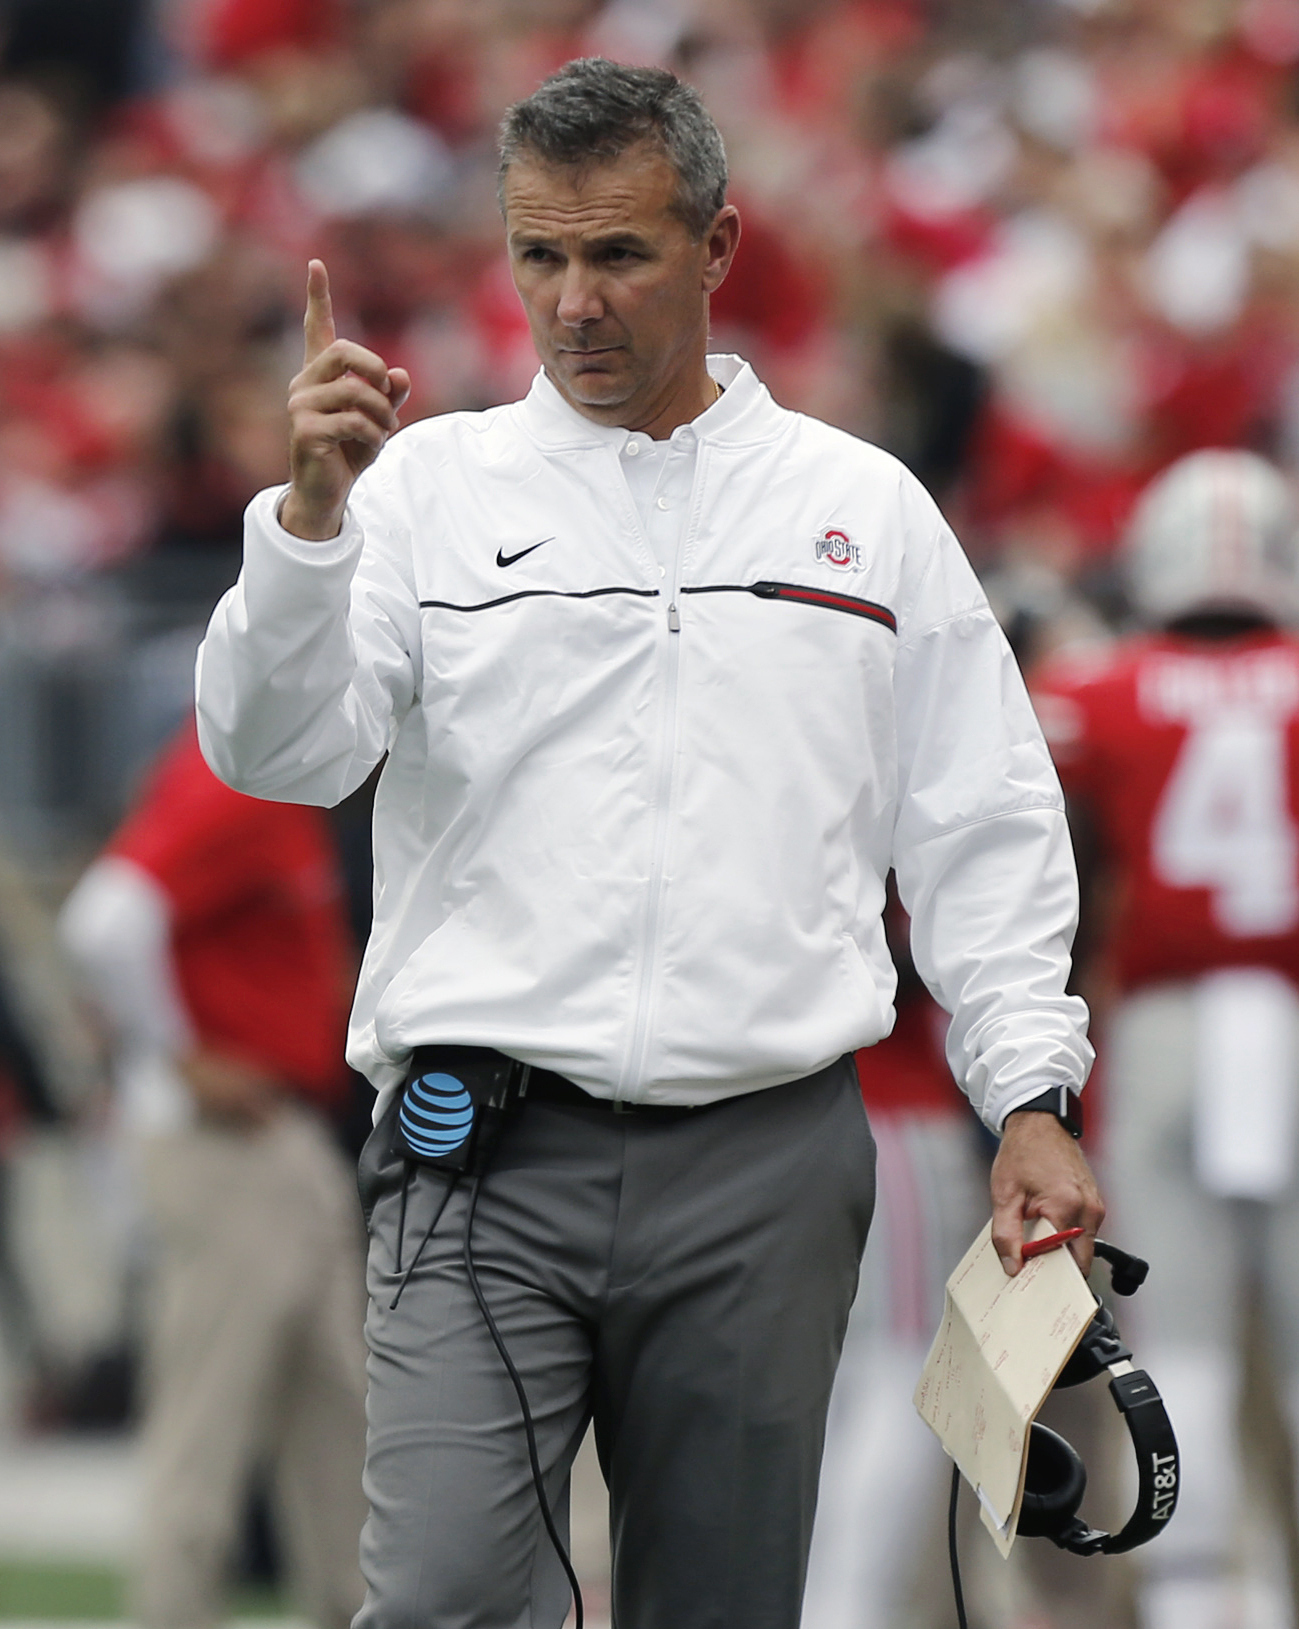 FILE - In this Oct. 1, 2016, file photo, Ohio State head coach Urban Meyer instructs his team during an NCAA college football game against Rutgers, in Columbus, Ohio.  The stretch run of the regular season makes it tempting for playoff contenders to run u